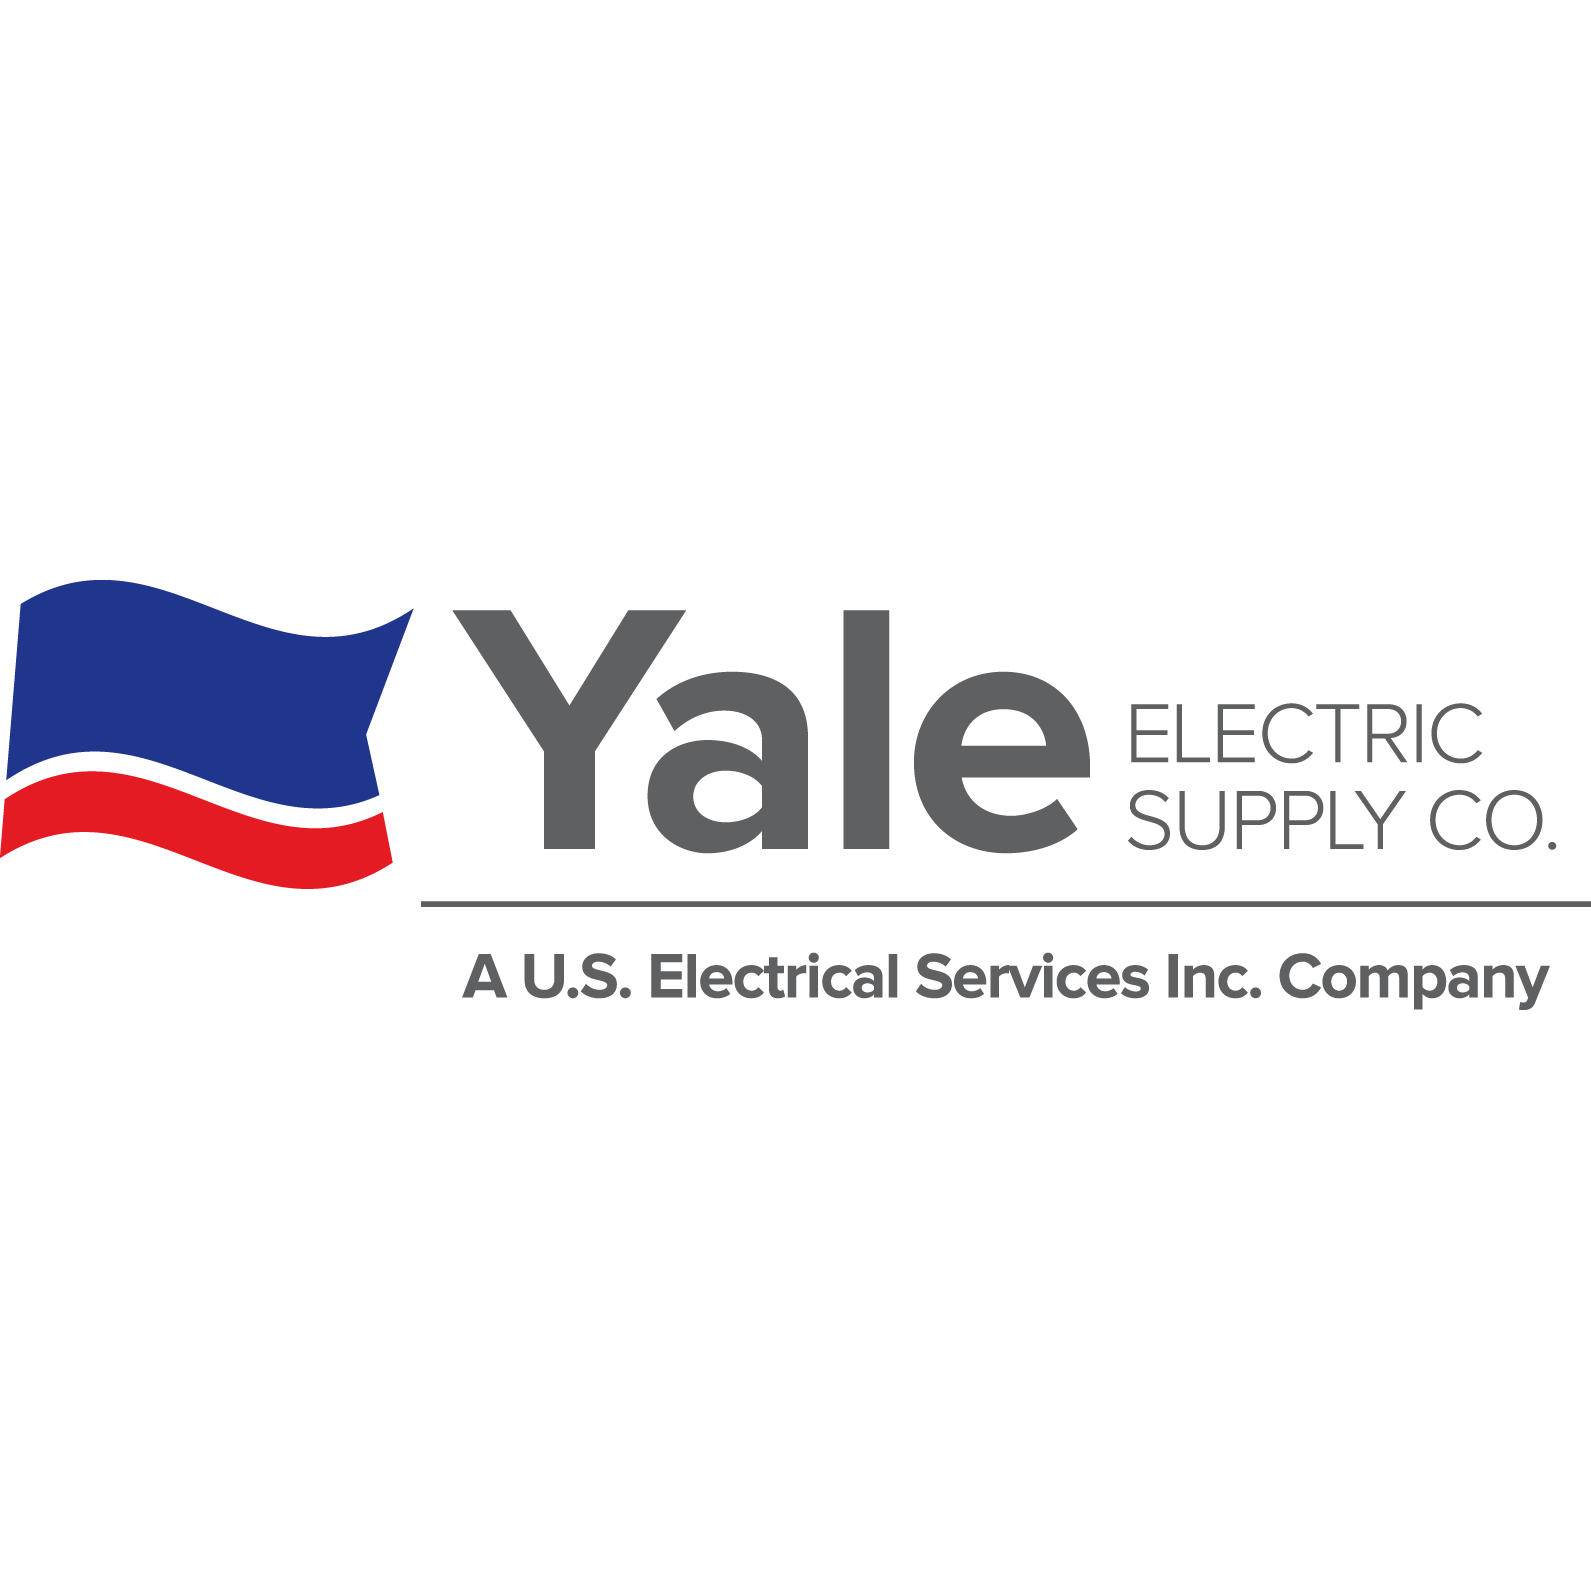 Yale Electric Supply Co. image 1